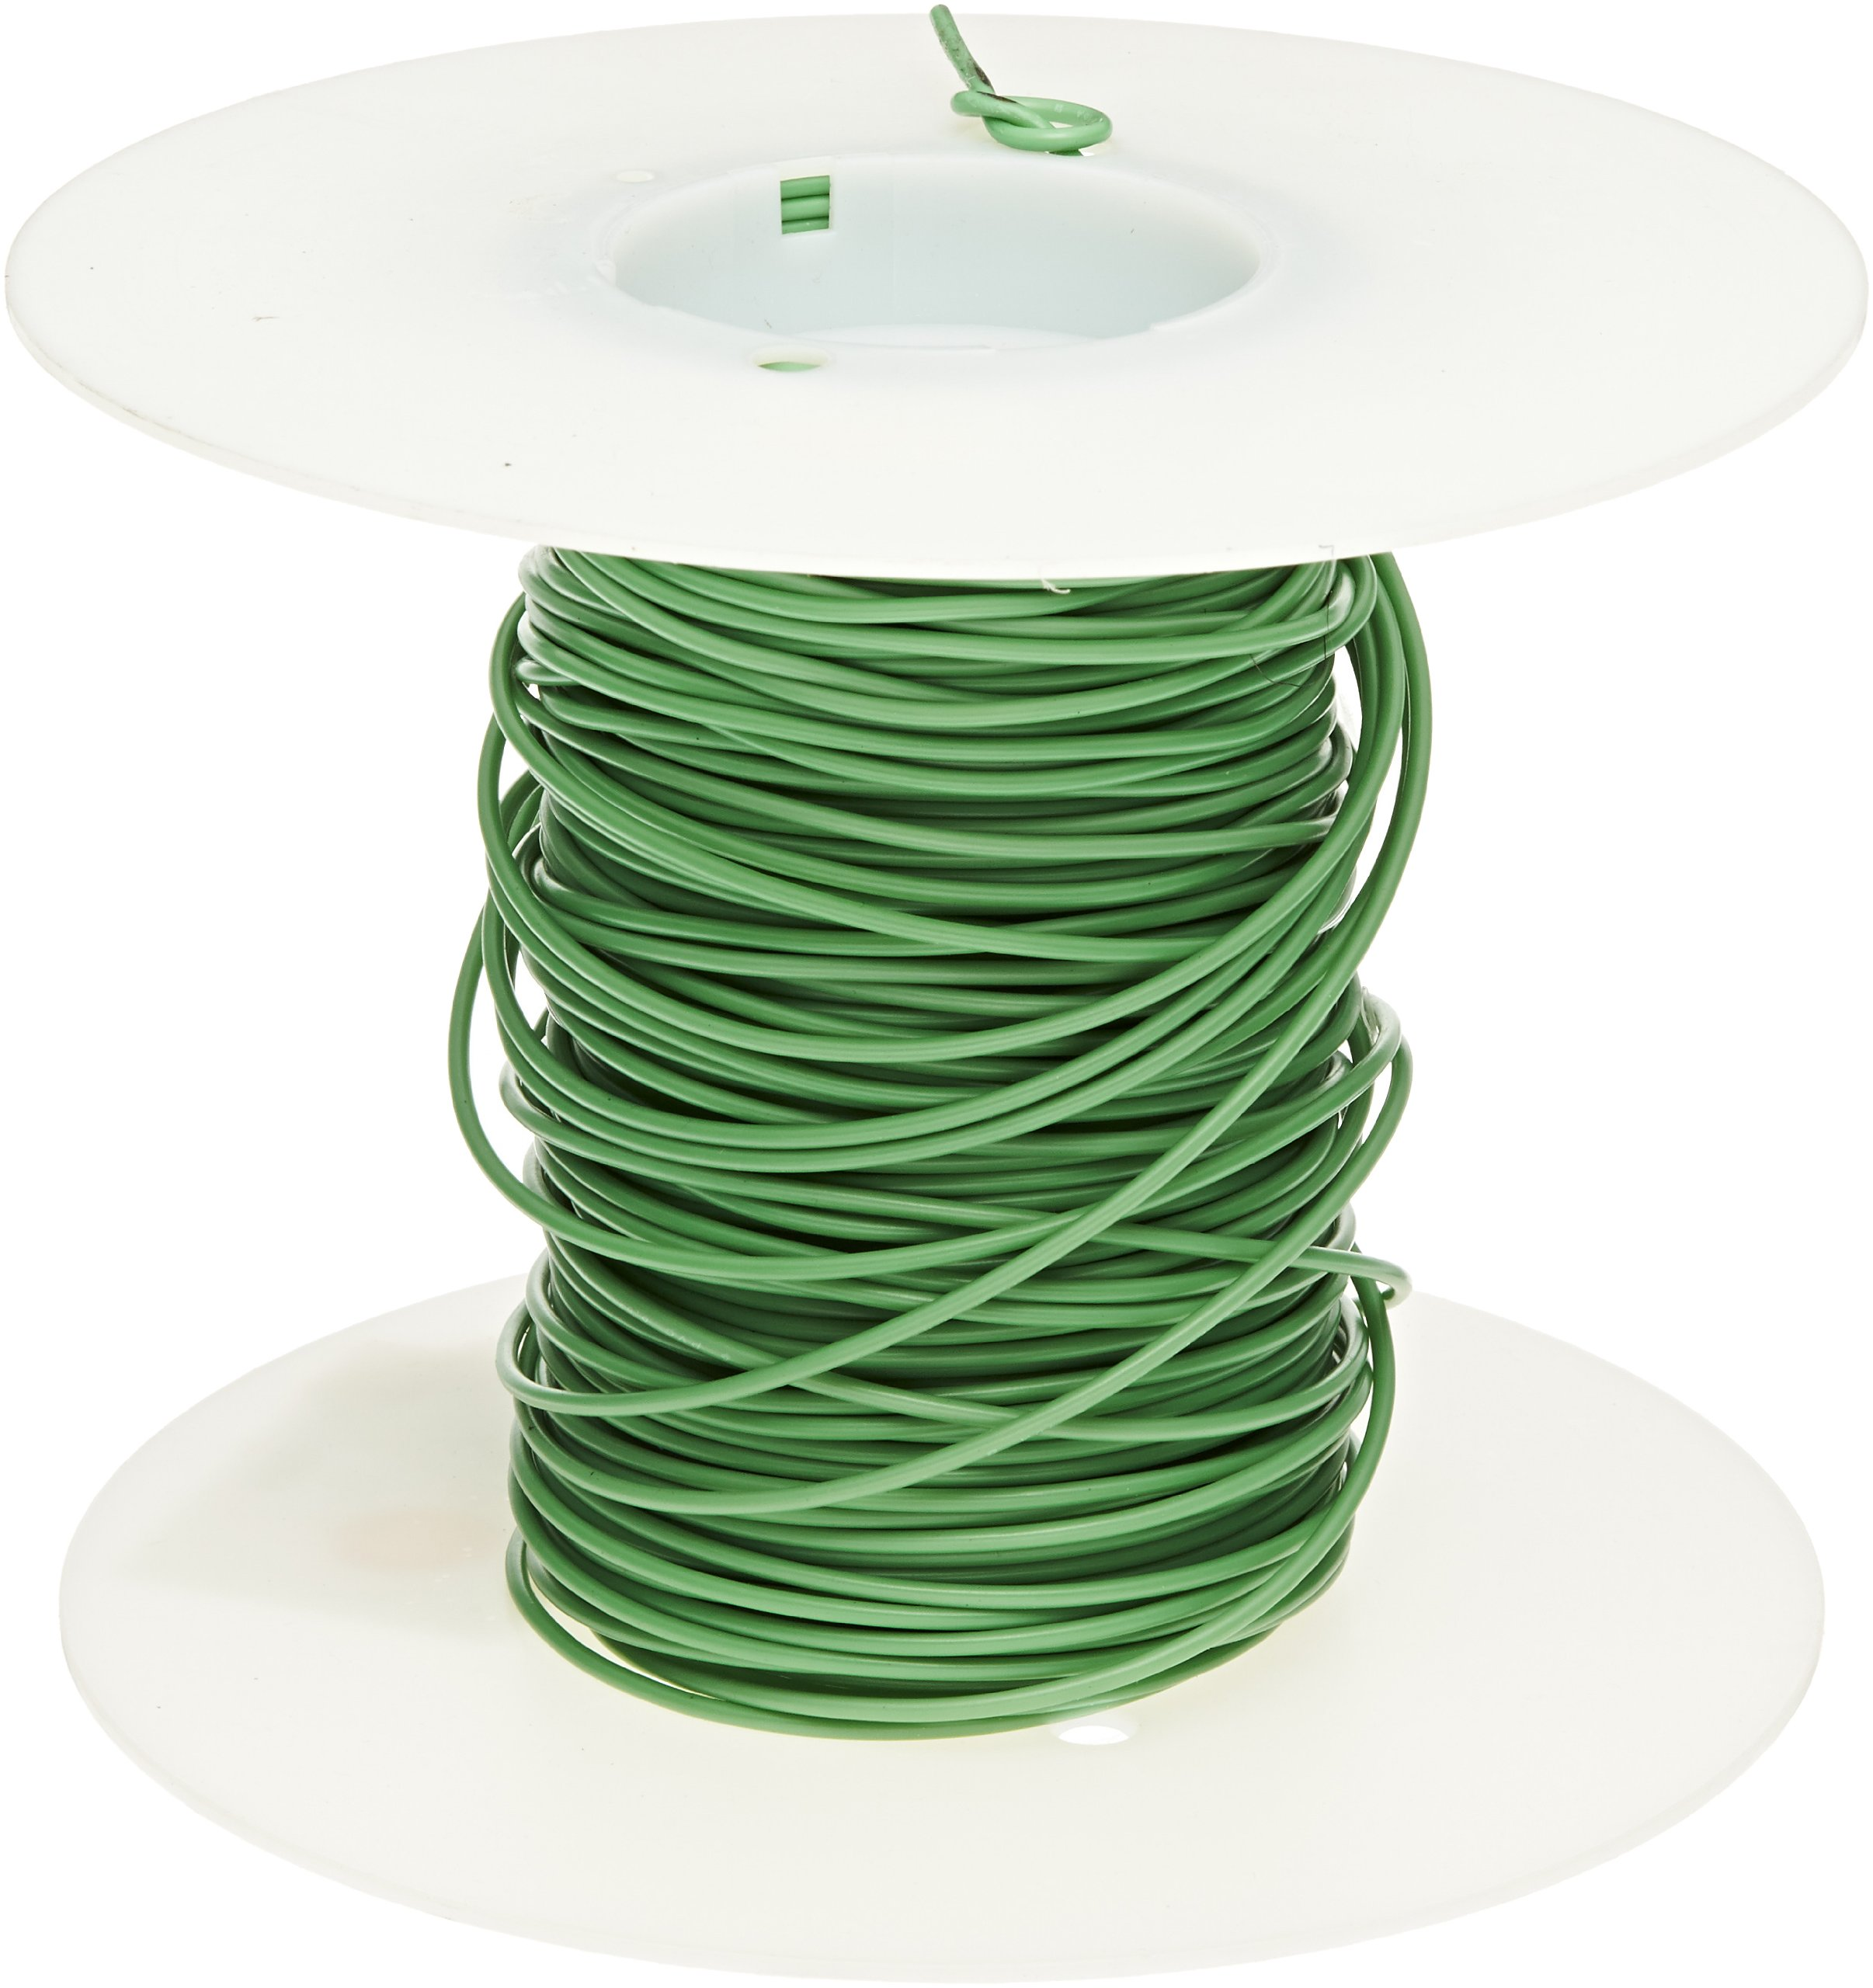 Cal Test Electronics CT2879 Test Lead Wire, 20 AWG, 10 Amp, PVC Jacket, 0.50 sq mm, 10m Length, Green by Cal Test Electronics (Image #2)